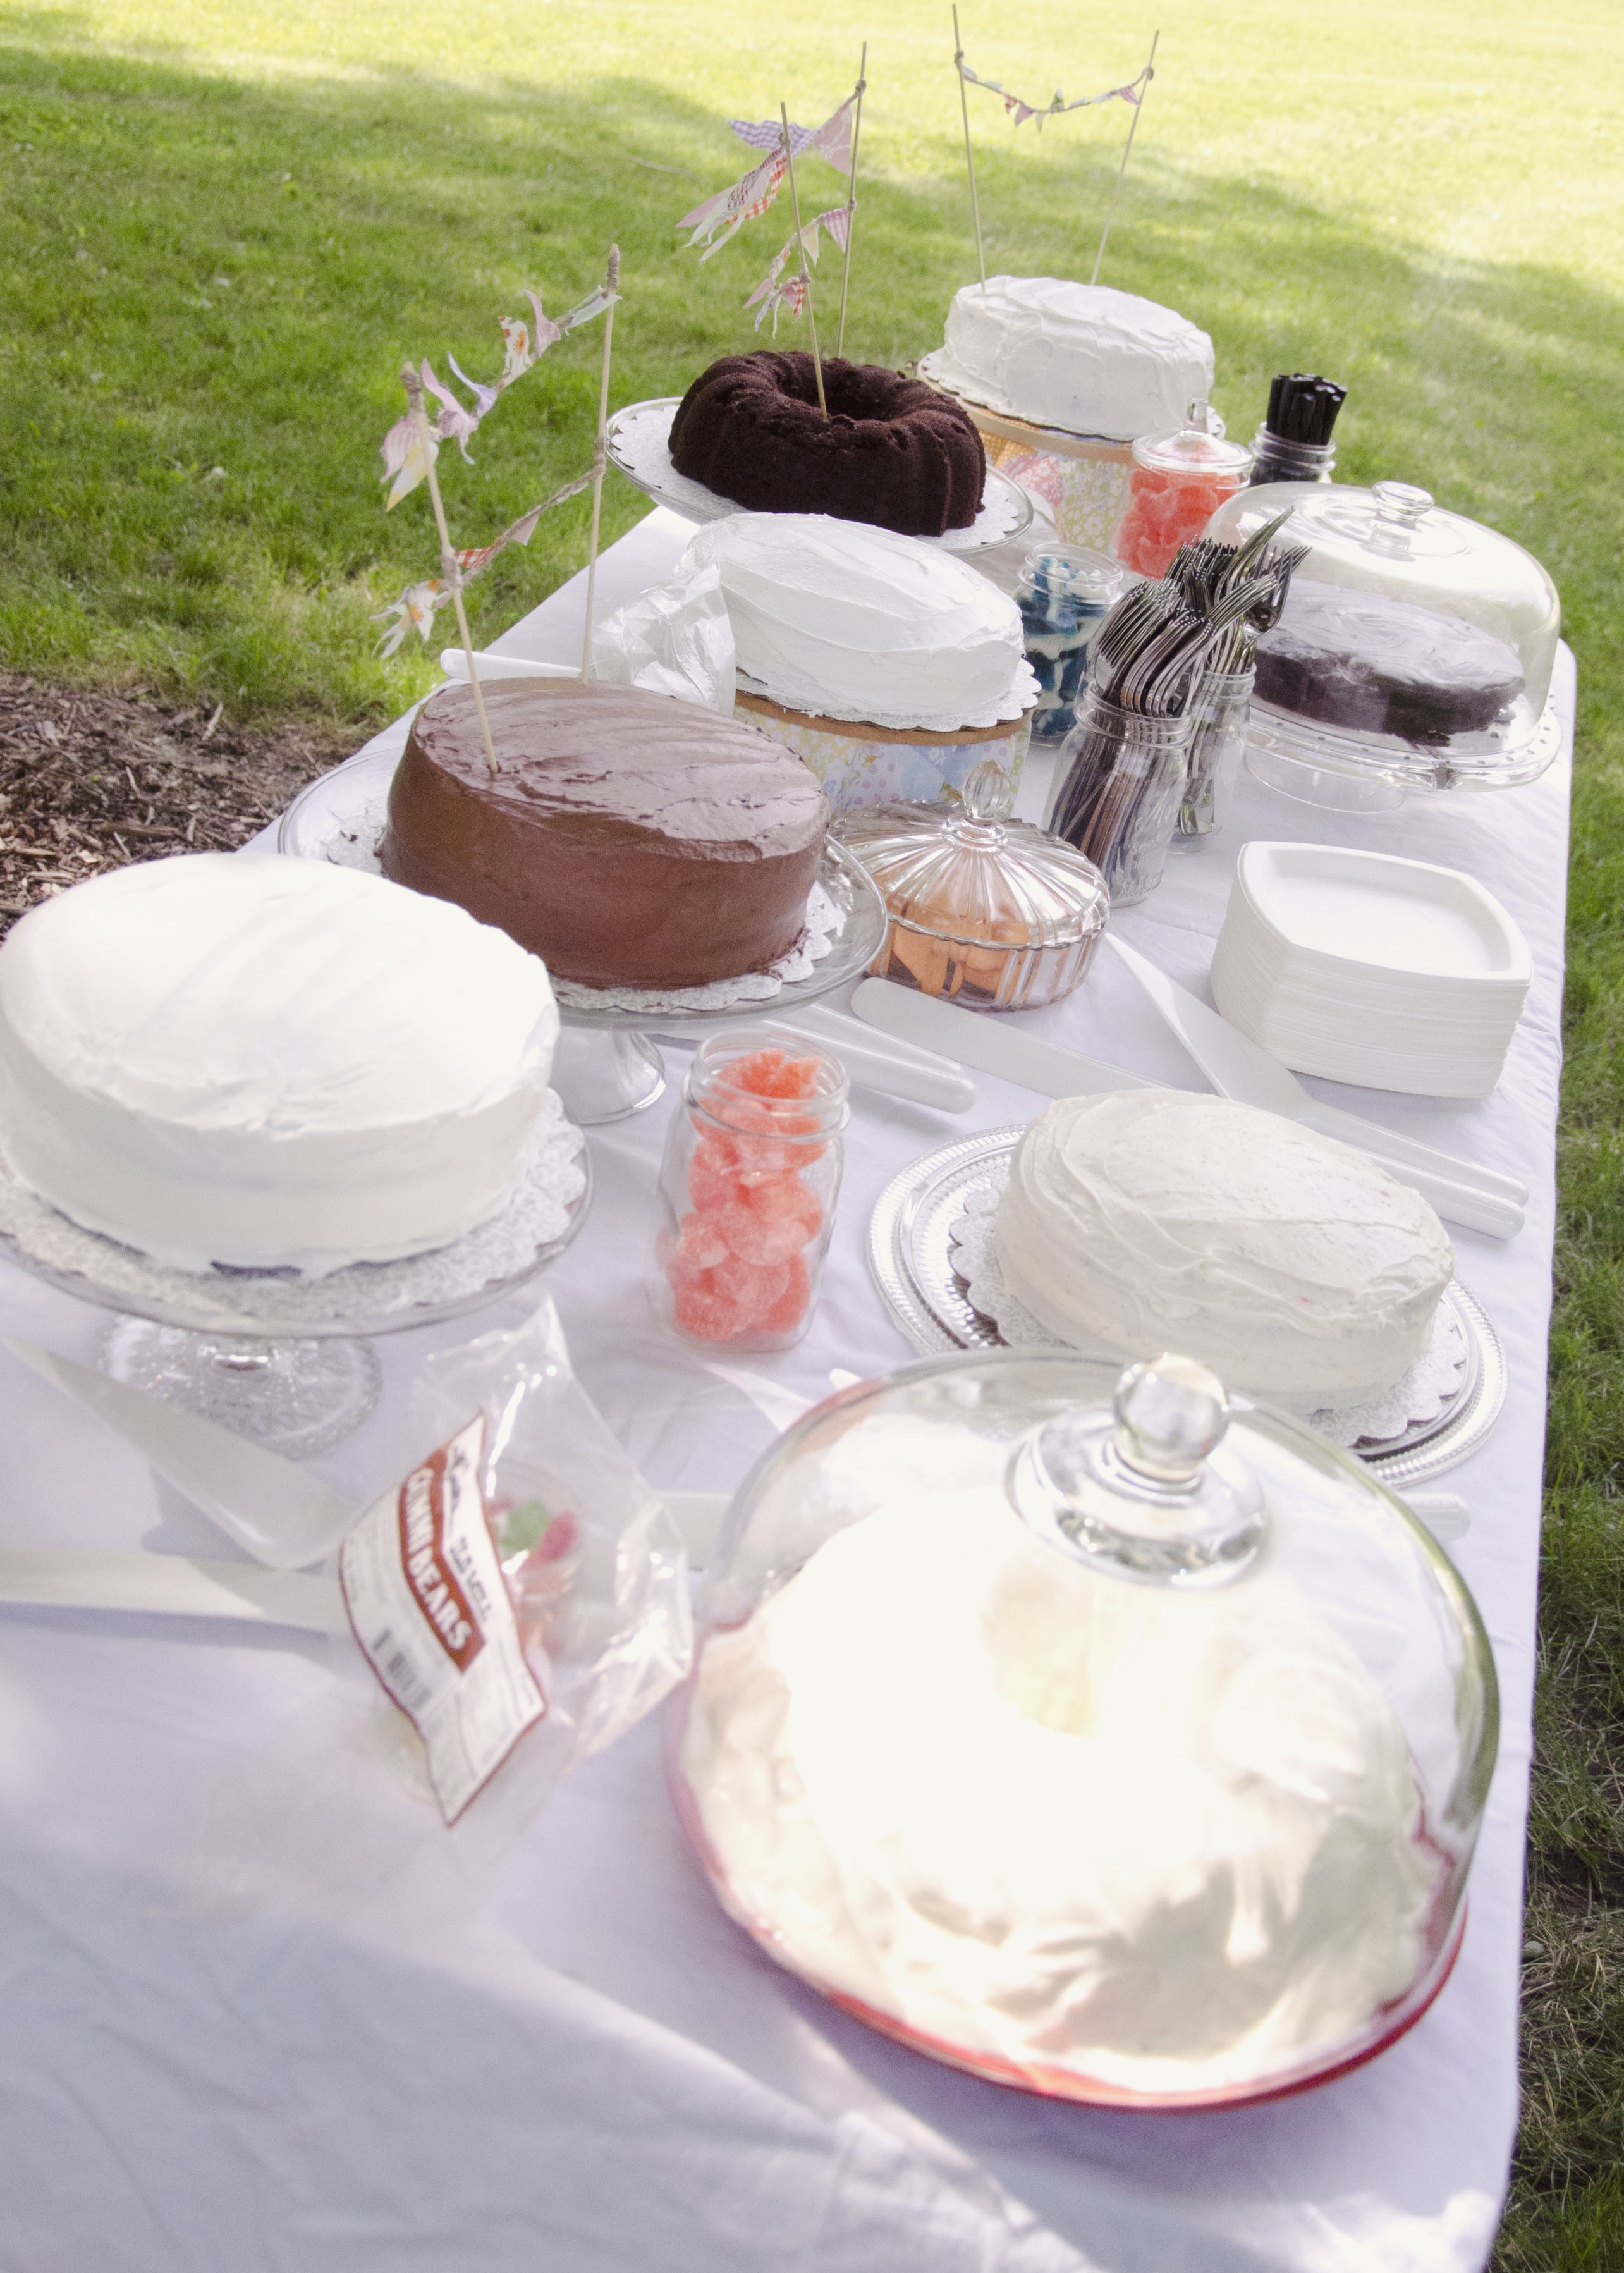 Cakes Made With Love: Our DIY Wedding Cake Table – MPLS MAMA BEAR